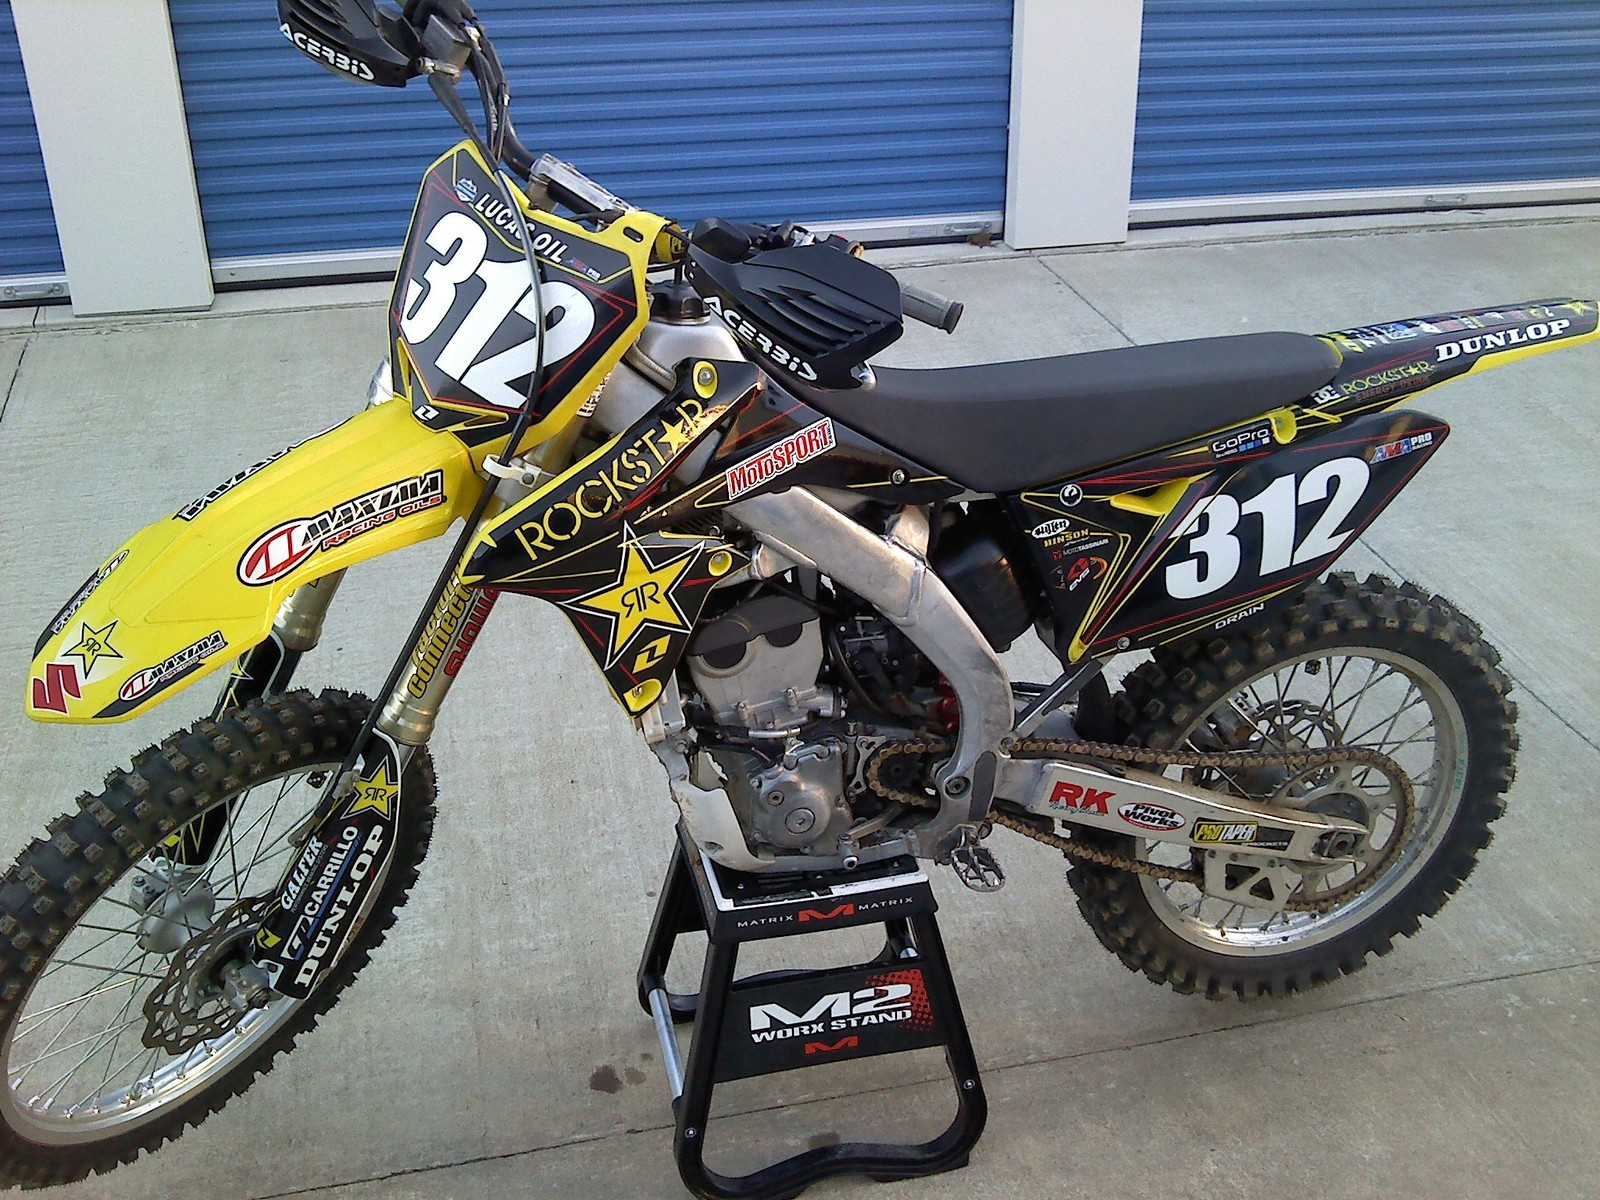 2011 rmz 250 rockstar suzuki drain312 39 s bike check. Black Bedroom Furniture Sets. Home Design Ideas